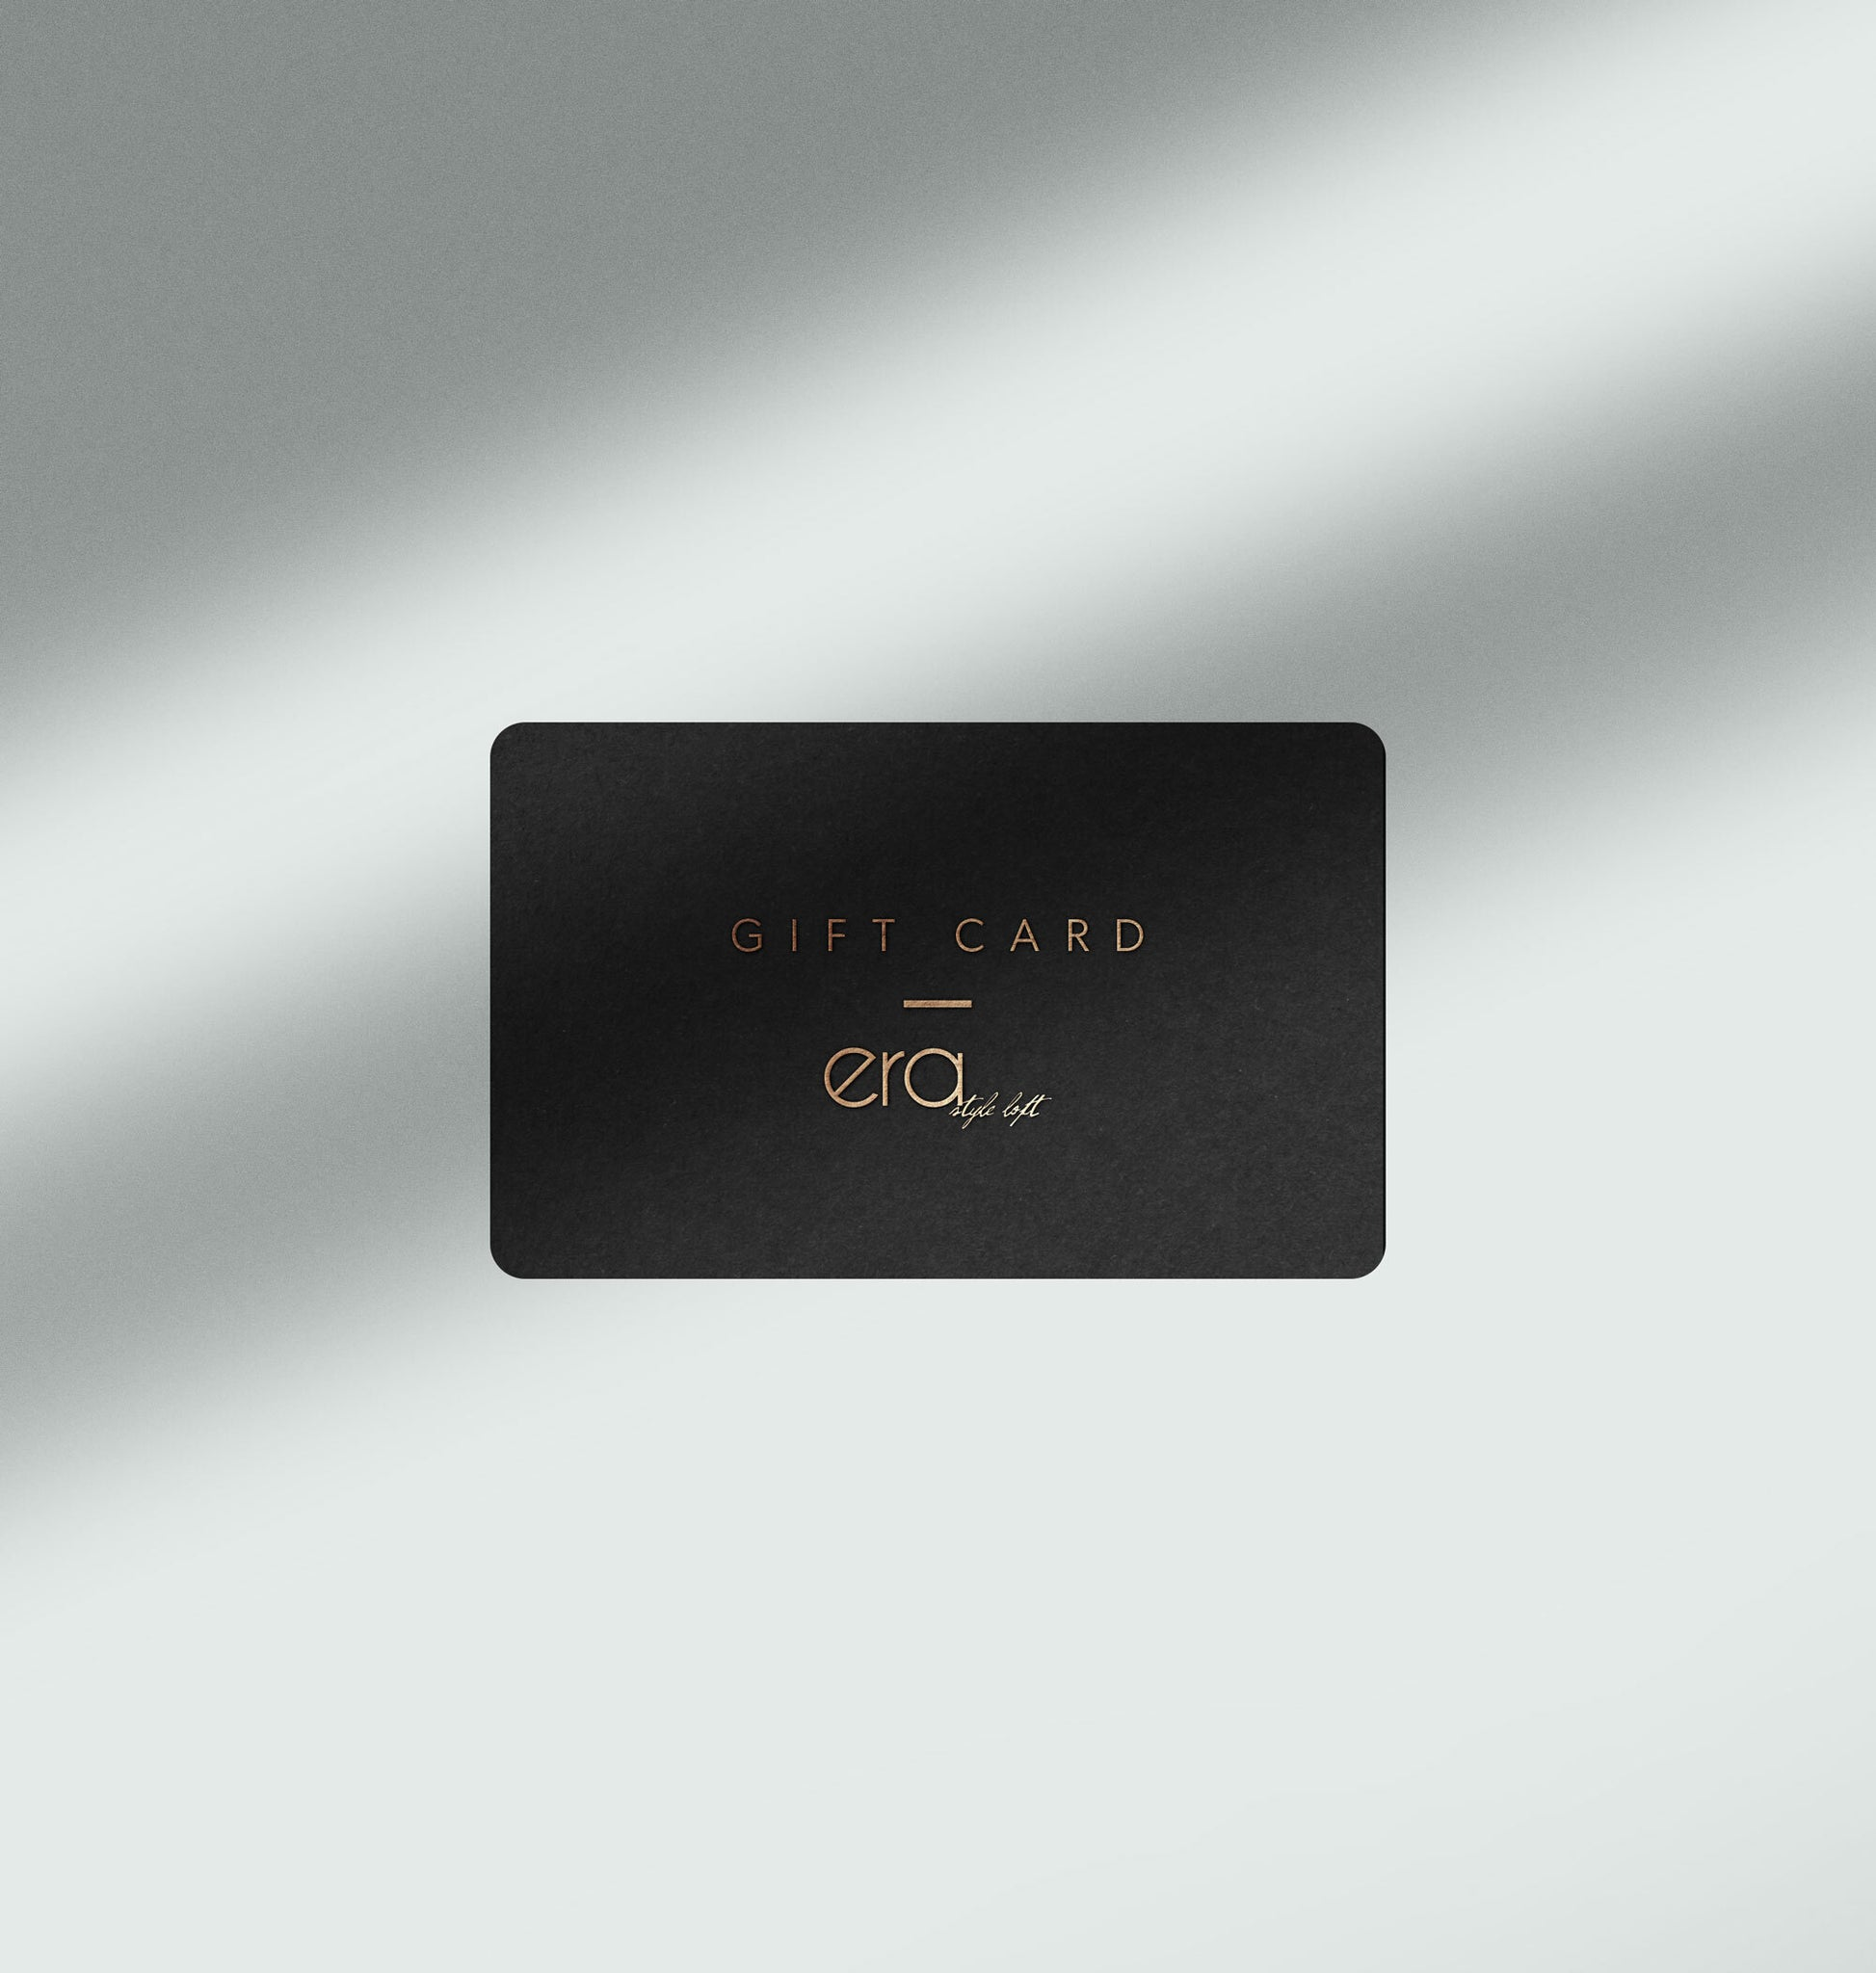 Gift Card $750